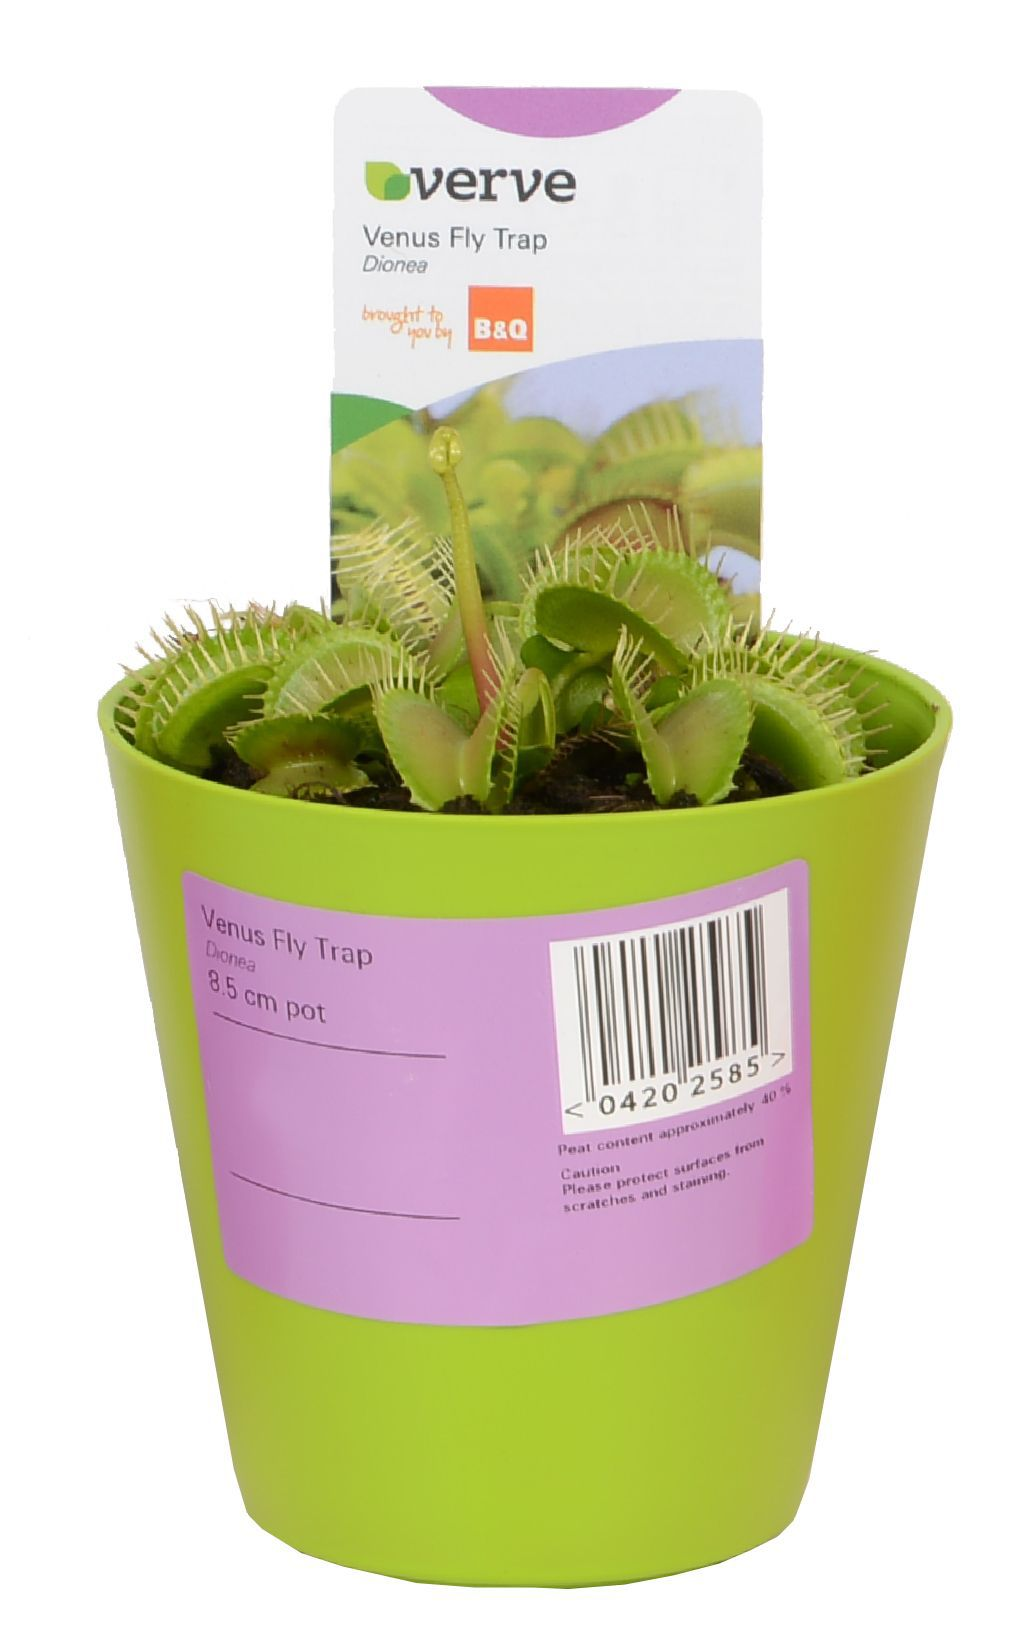 play kitchens for sale outdoor kitchen sink station verve venus fly trap in plastic pot | departments diy at b&q